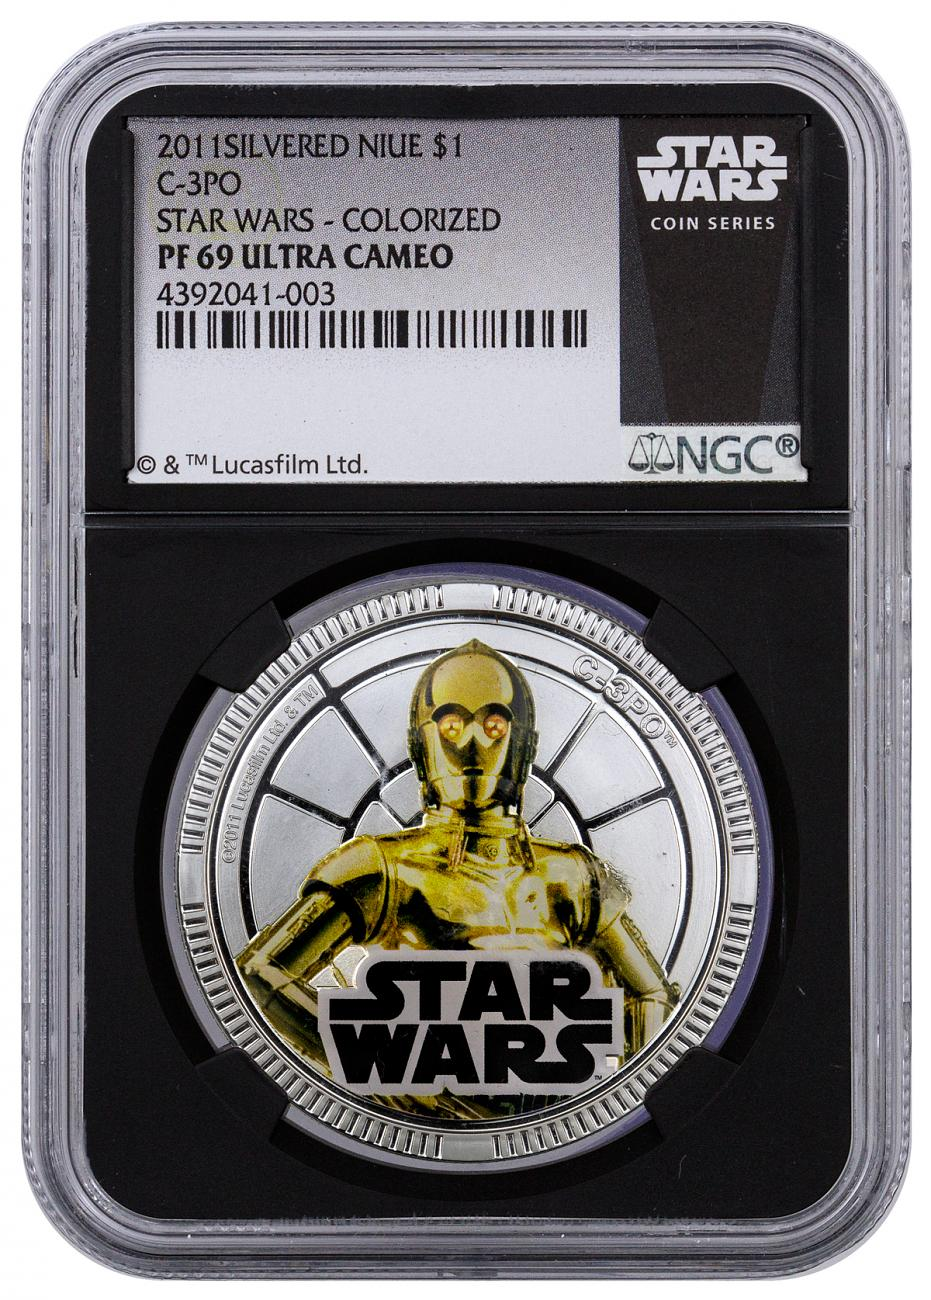 2011 Niue $1 Colorized Proof Silver Plated Star Wars - C-3P0 - NGC PF69 UC (Exclusive Star Wars Label with Black Core)